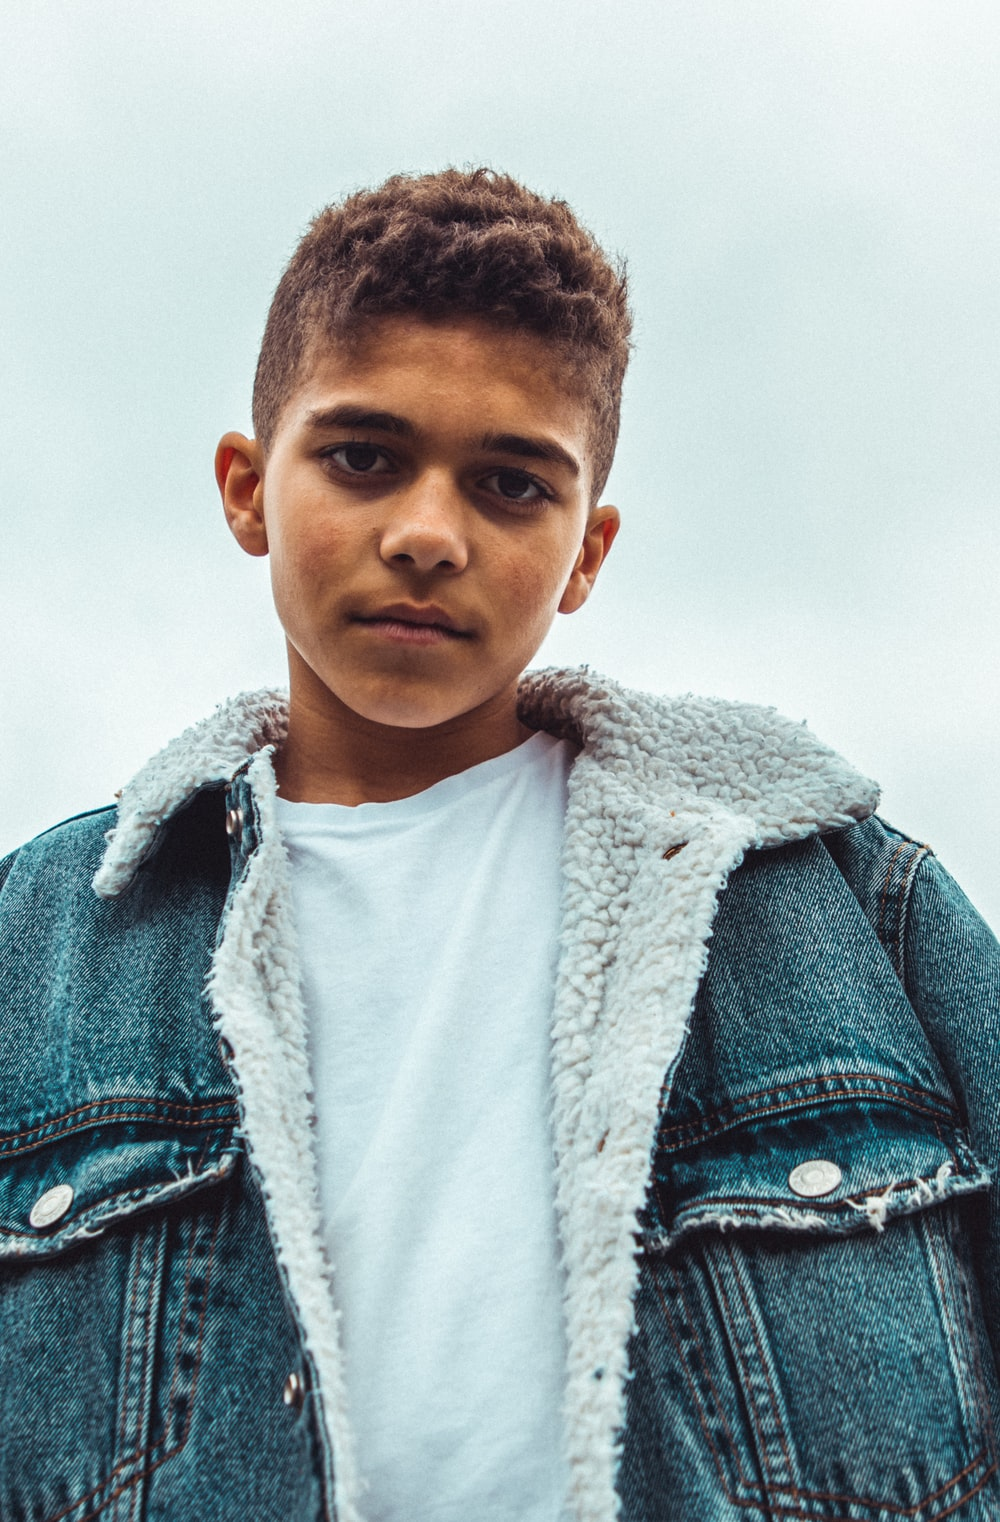 boy wearing blue denim jacket standing and looking straight